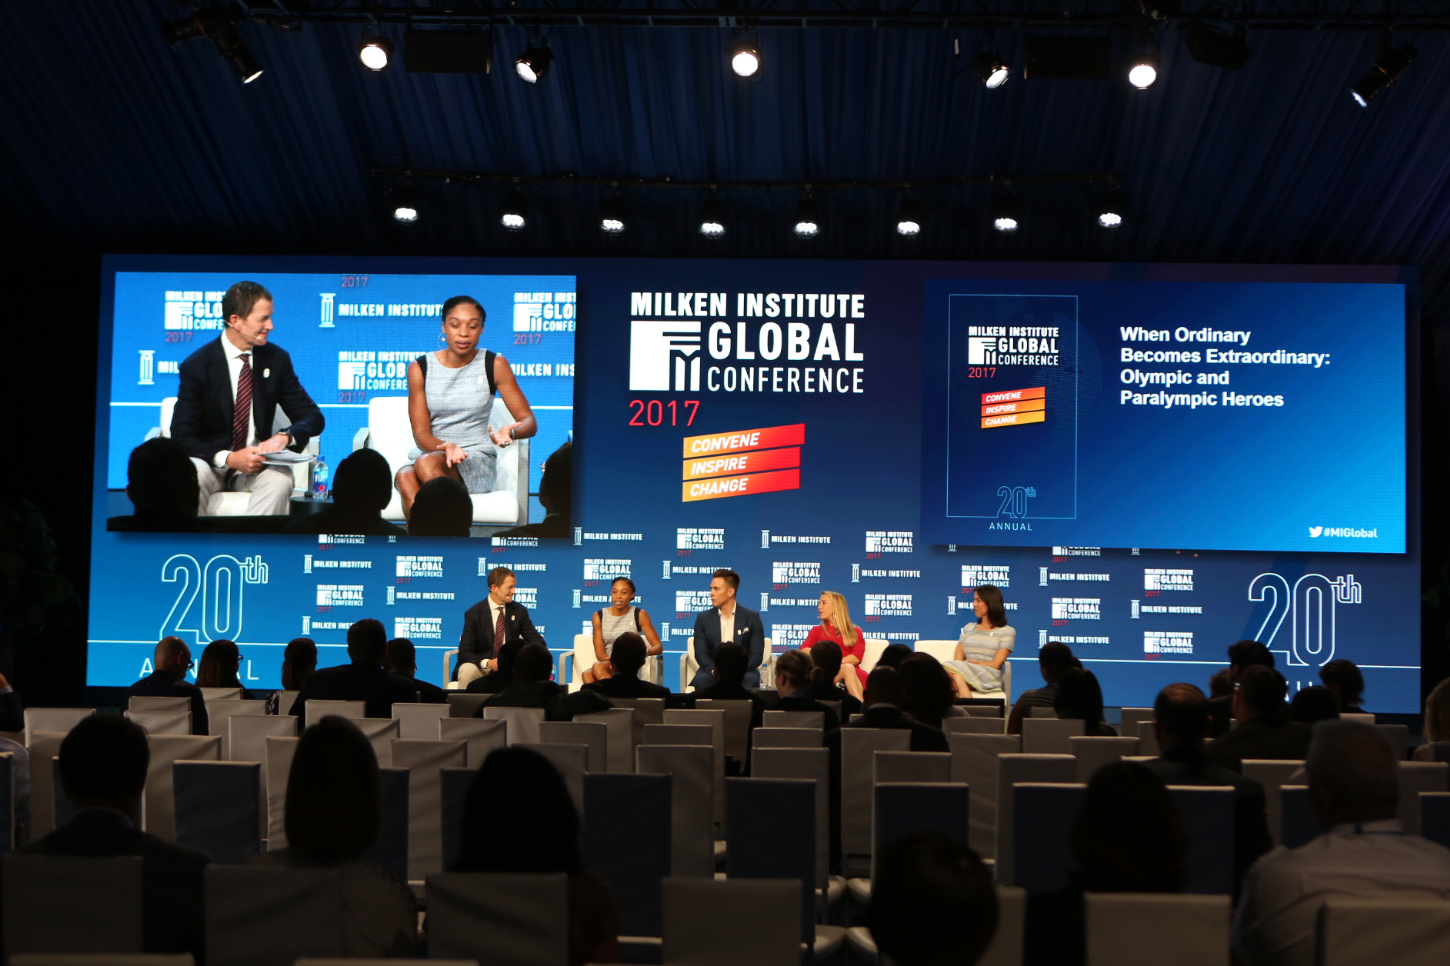 The Milken Institute's Global Conference Enters Its 20th ...